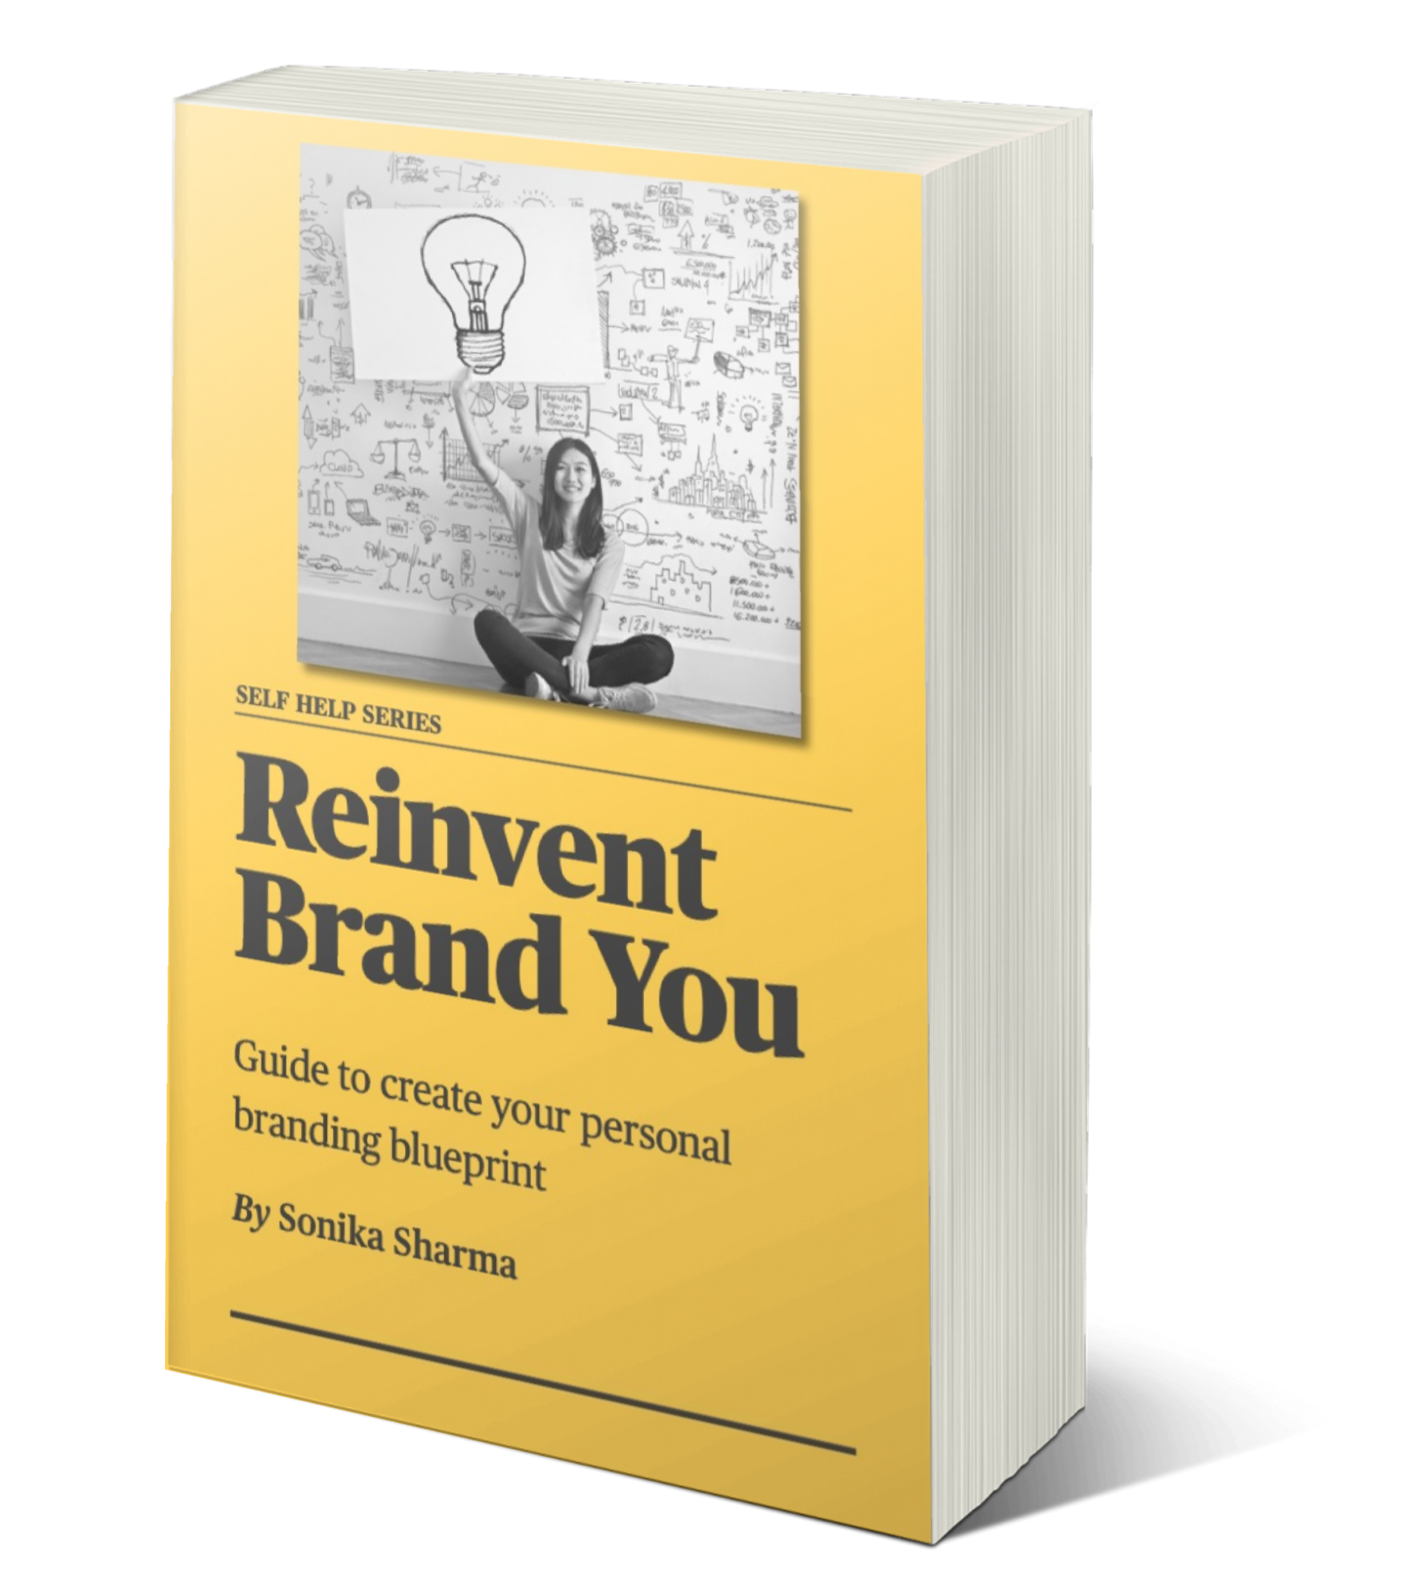 reinvent brand you by sonika sharma